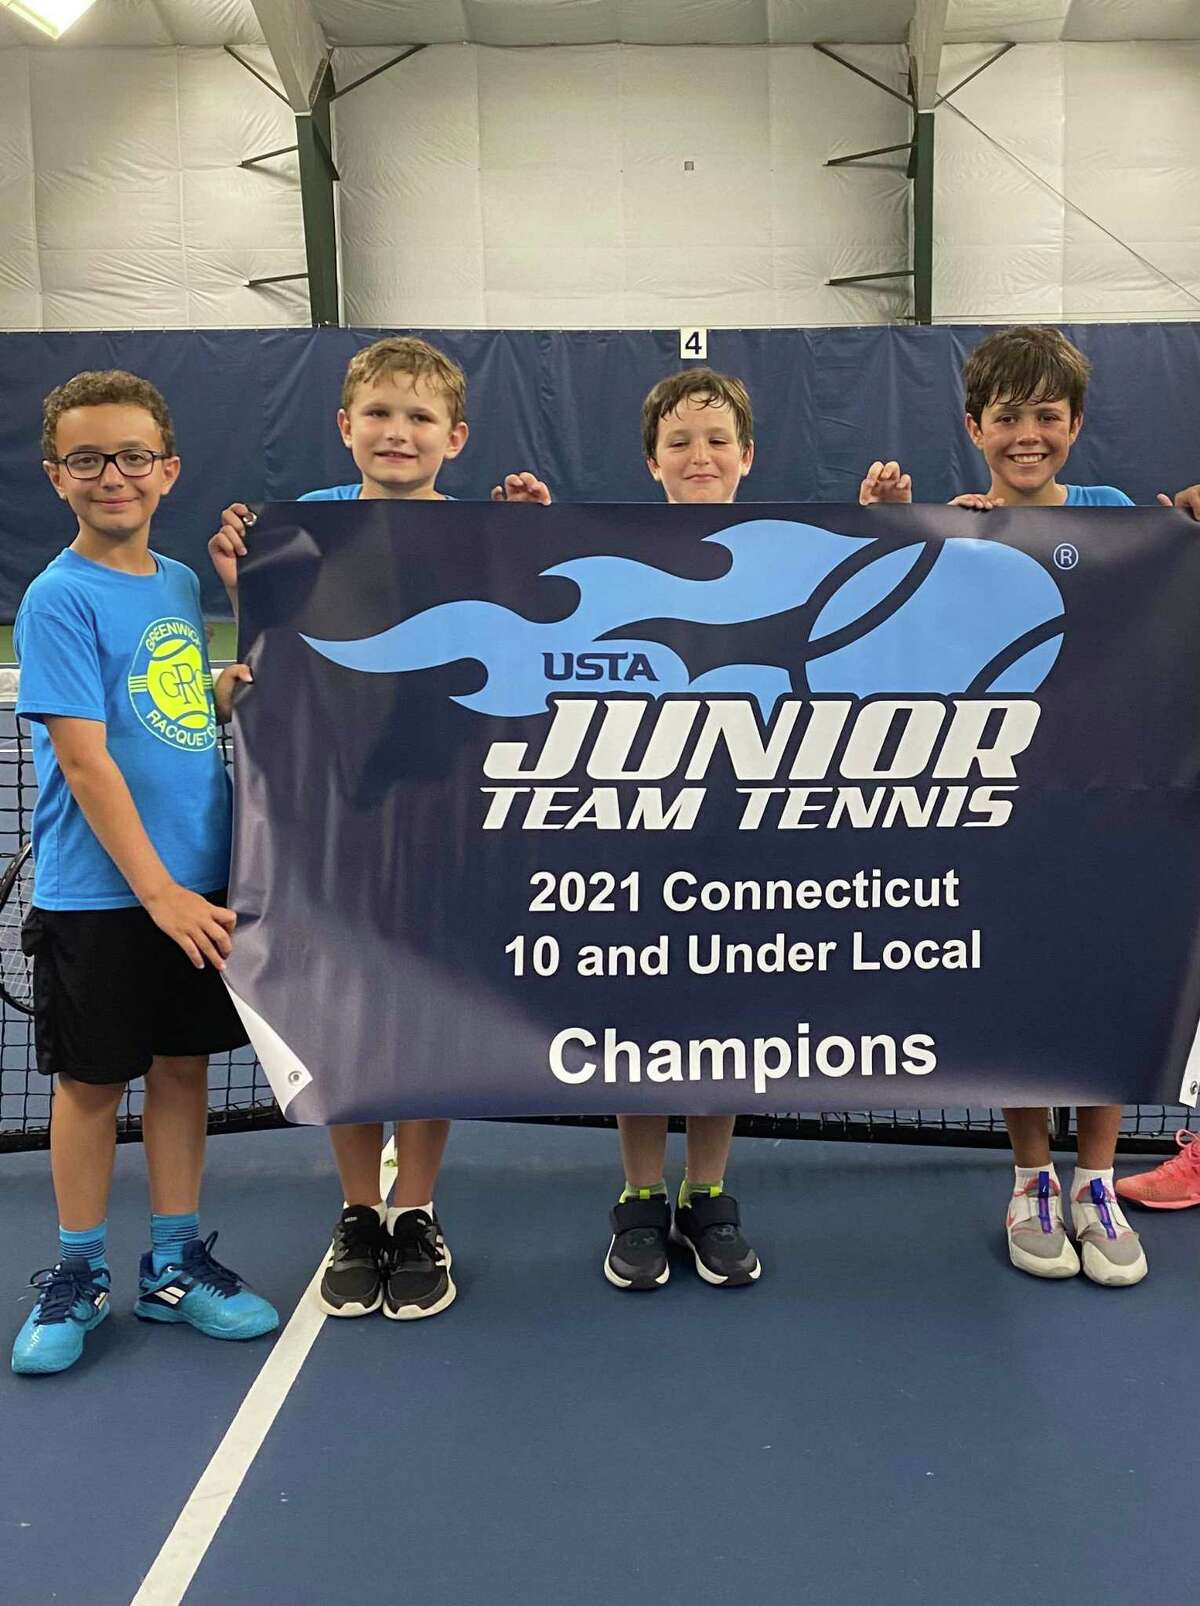 Greenwich Racquet Club 10-under state championship team from left, Jimmy Collins, Andrew Mahoney, Maximo Alverez, and Santiago Rodriguez Del Valle. Players not pictured pic Delilah Neuman, Alfanso Kersman, Vincente Kersman. Coach is Joaquin Marshall.